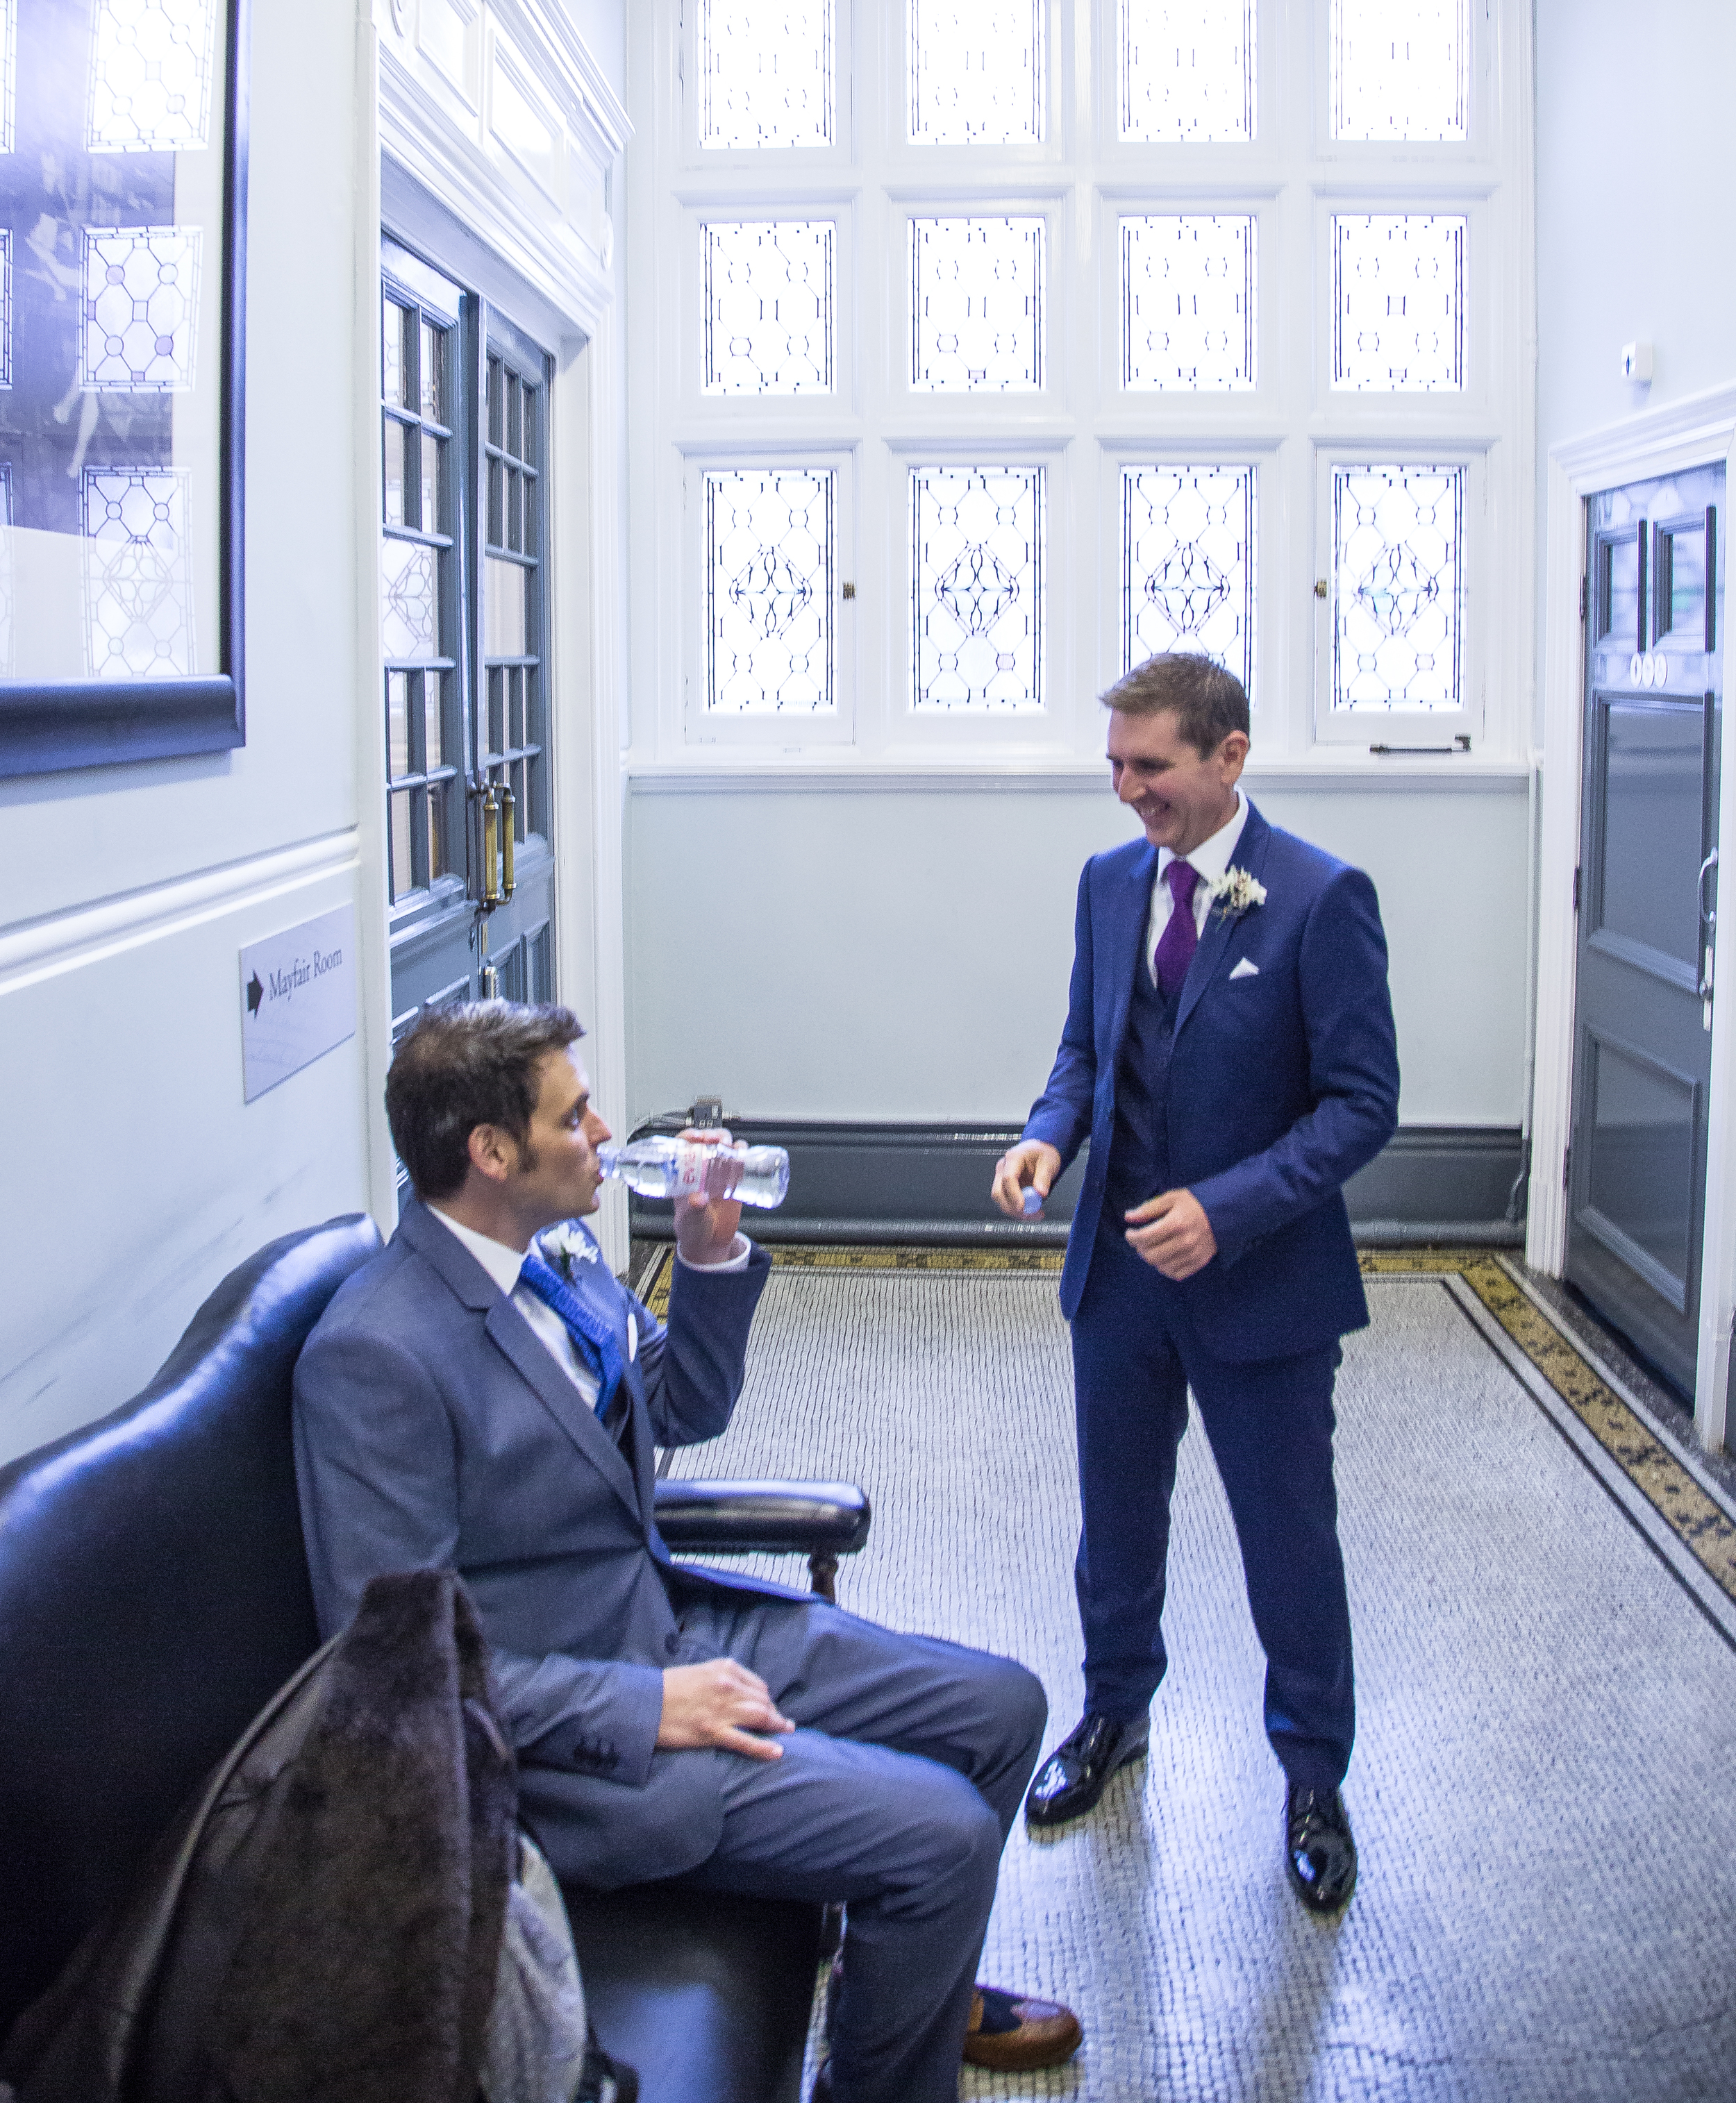 mayfair wedding same sex marriage london photography 1